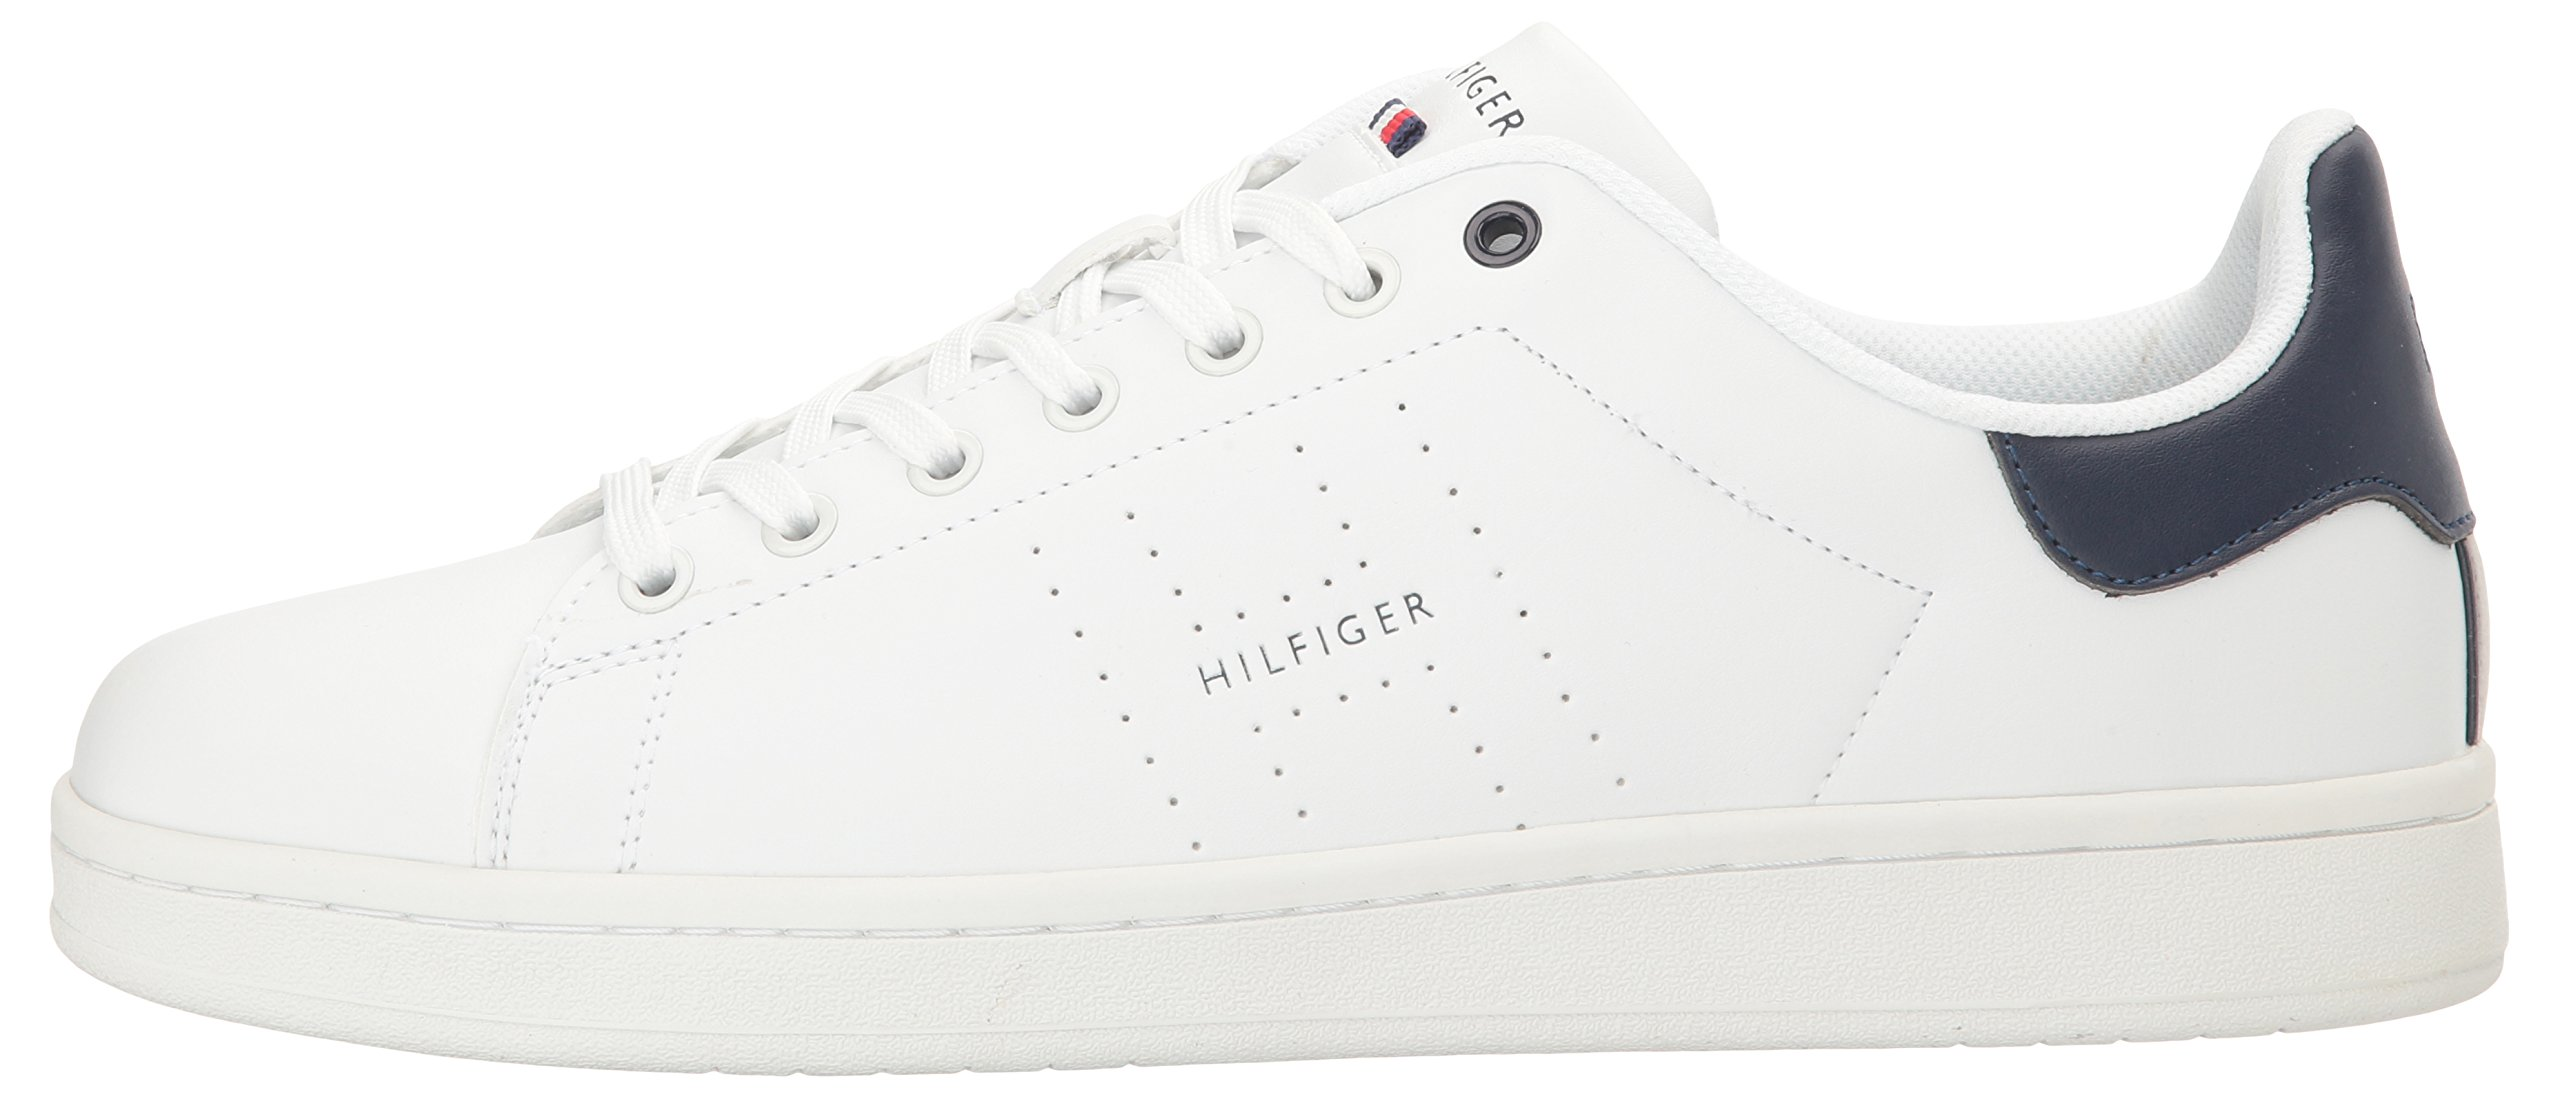 d45b9a06a6947b Tommy Hilfiger Men s Liston Shoe